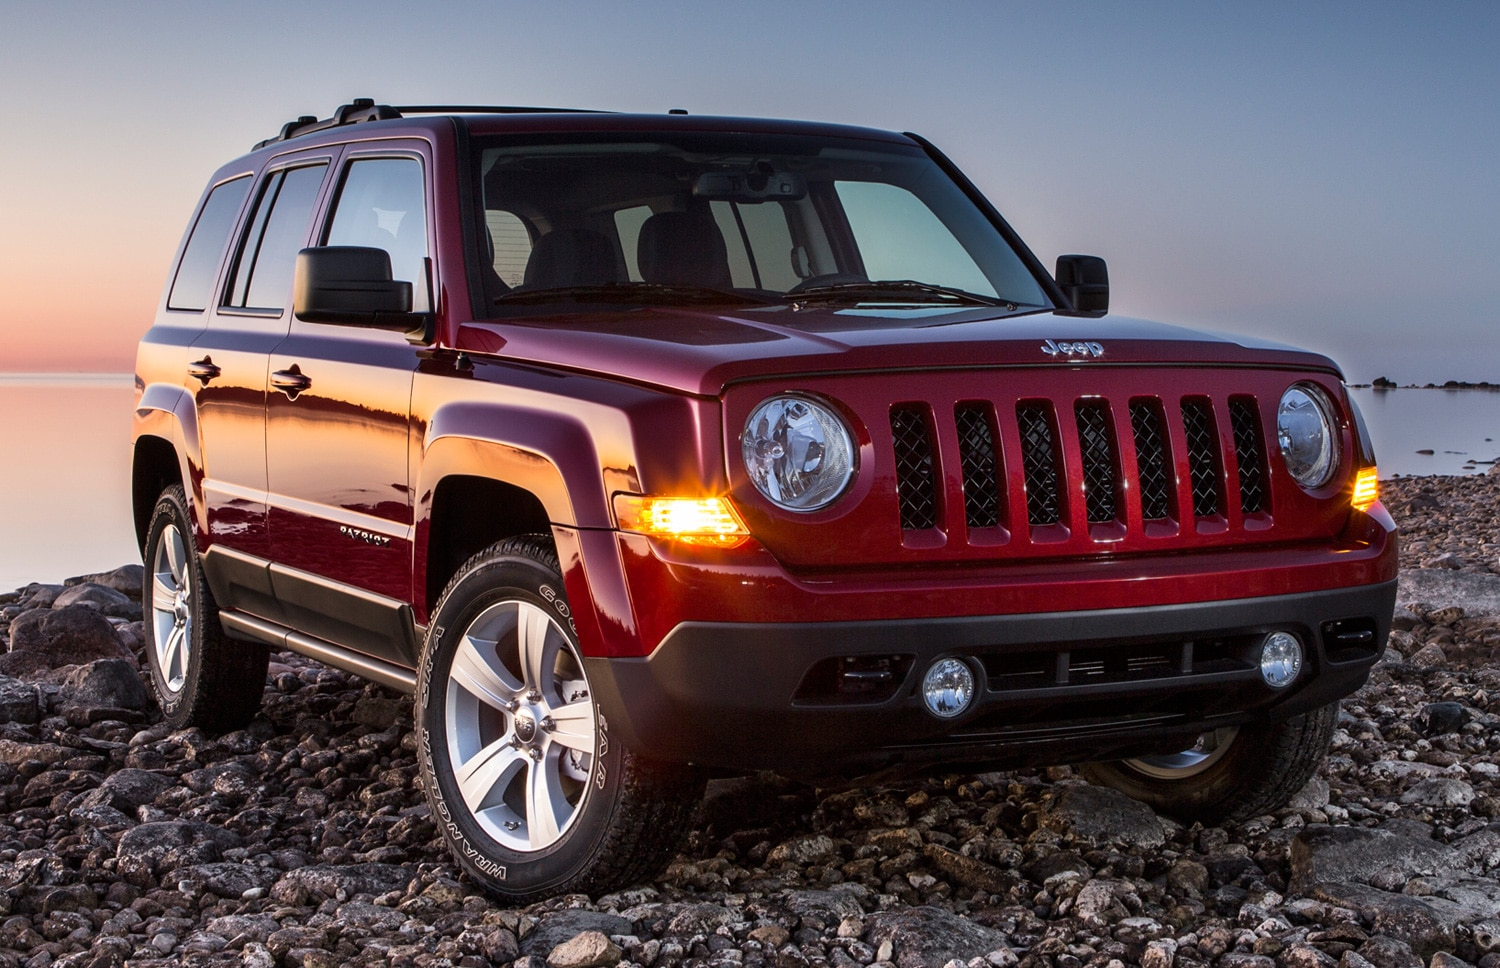 detroit 2013: 2014 jeep compass, patriot replace cvt with proper